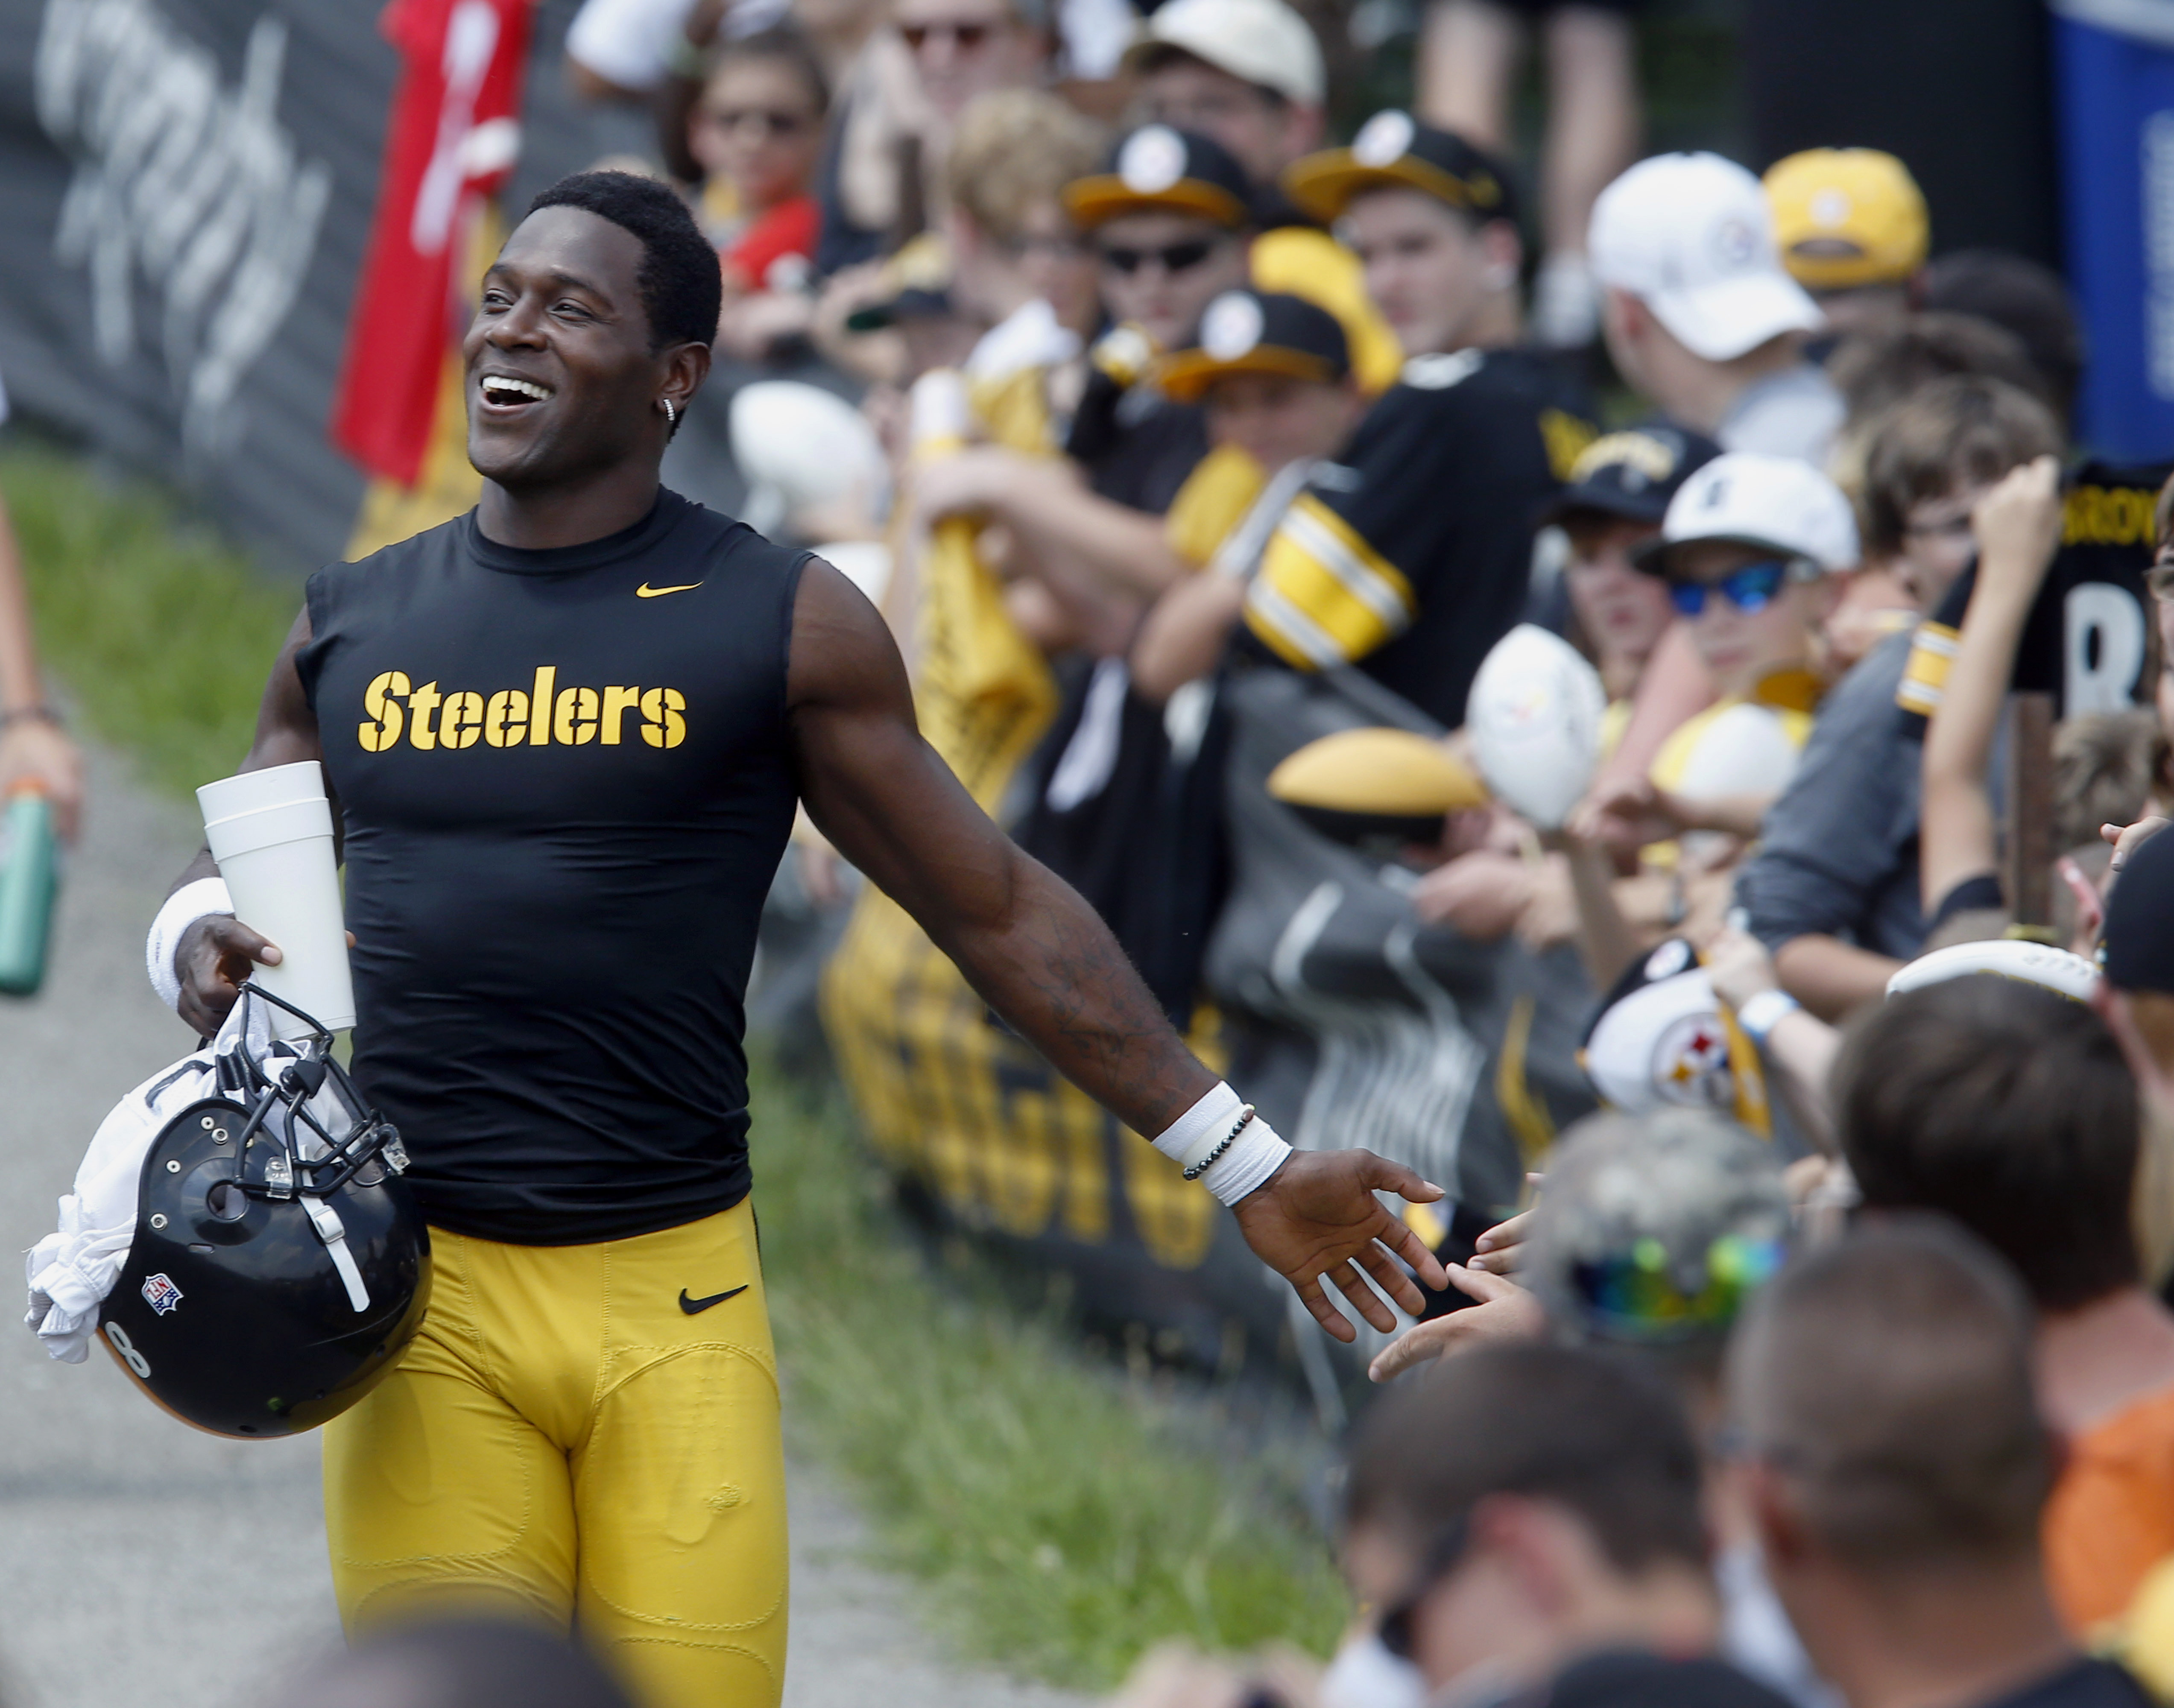 Pittsburgh Steelers wide receiver Antonio Brown is greeted by fans as he takes the field for practice at NFL football training camp in Latrobe, Pa., Monday, July 27, 2015. (AP Photo/Keith Srakocic)